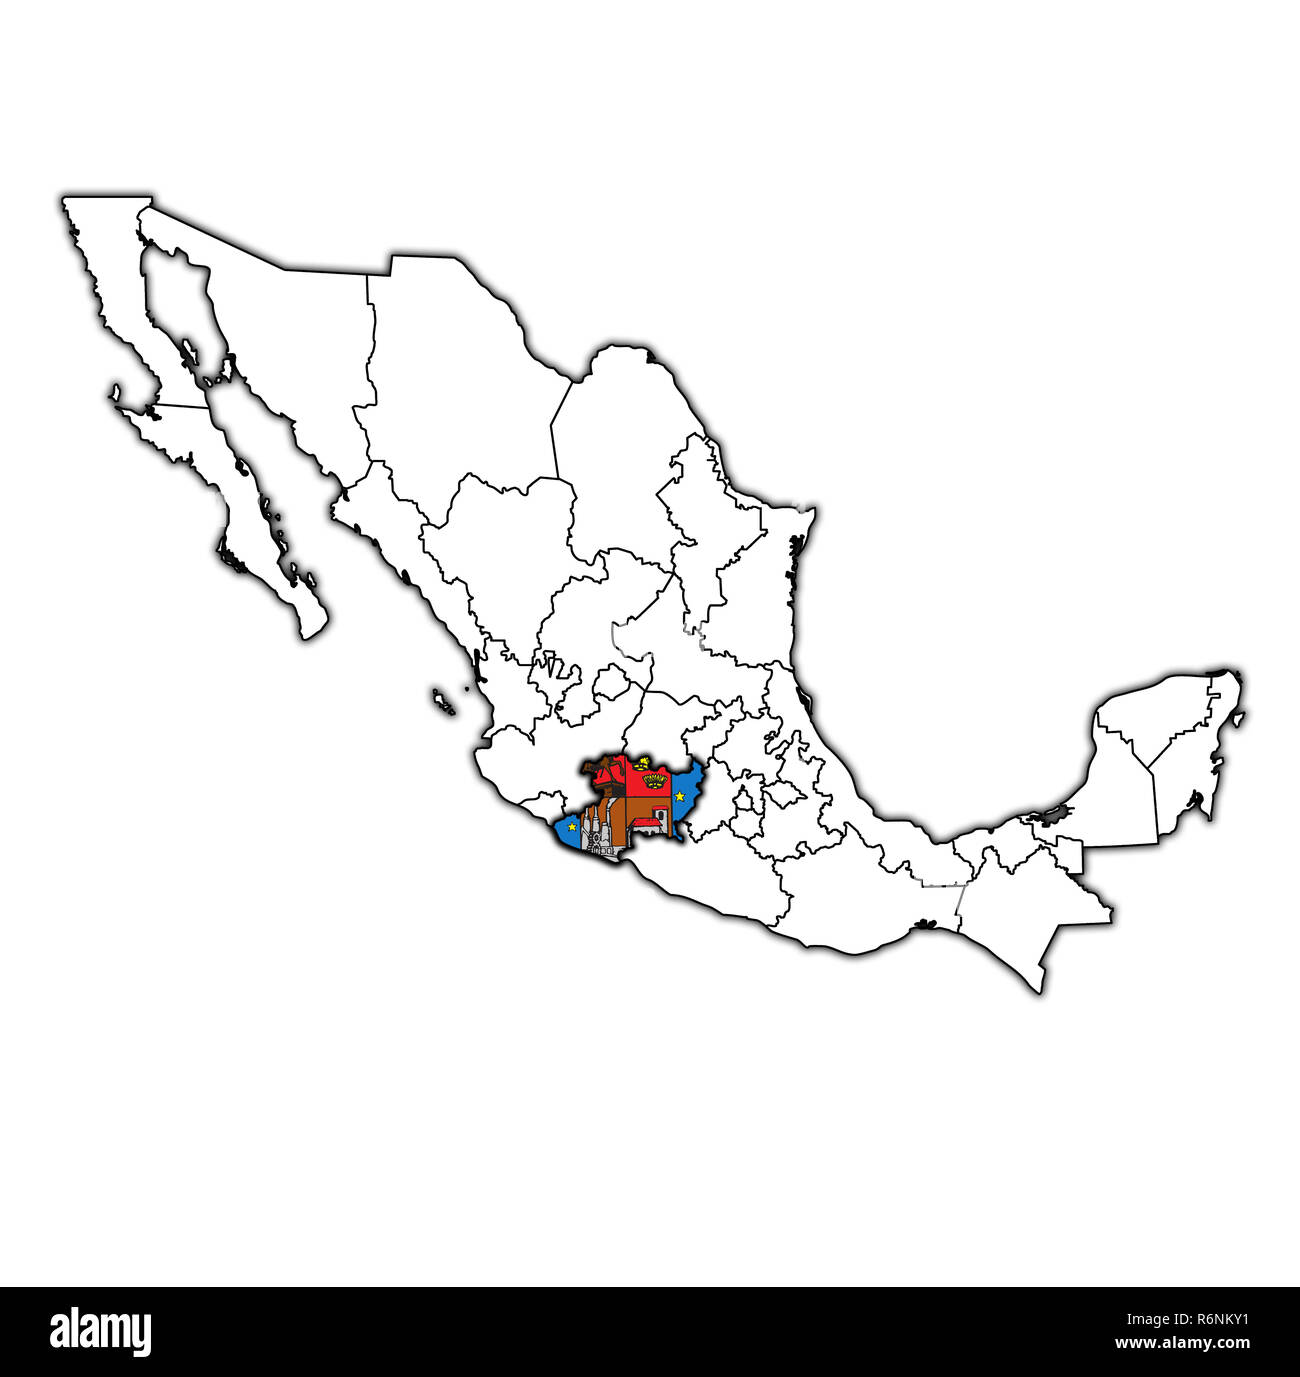 Michoacan on administration map of Mexico Stock Photo: 227899365 - Alamy